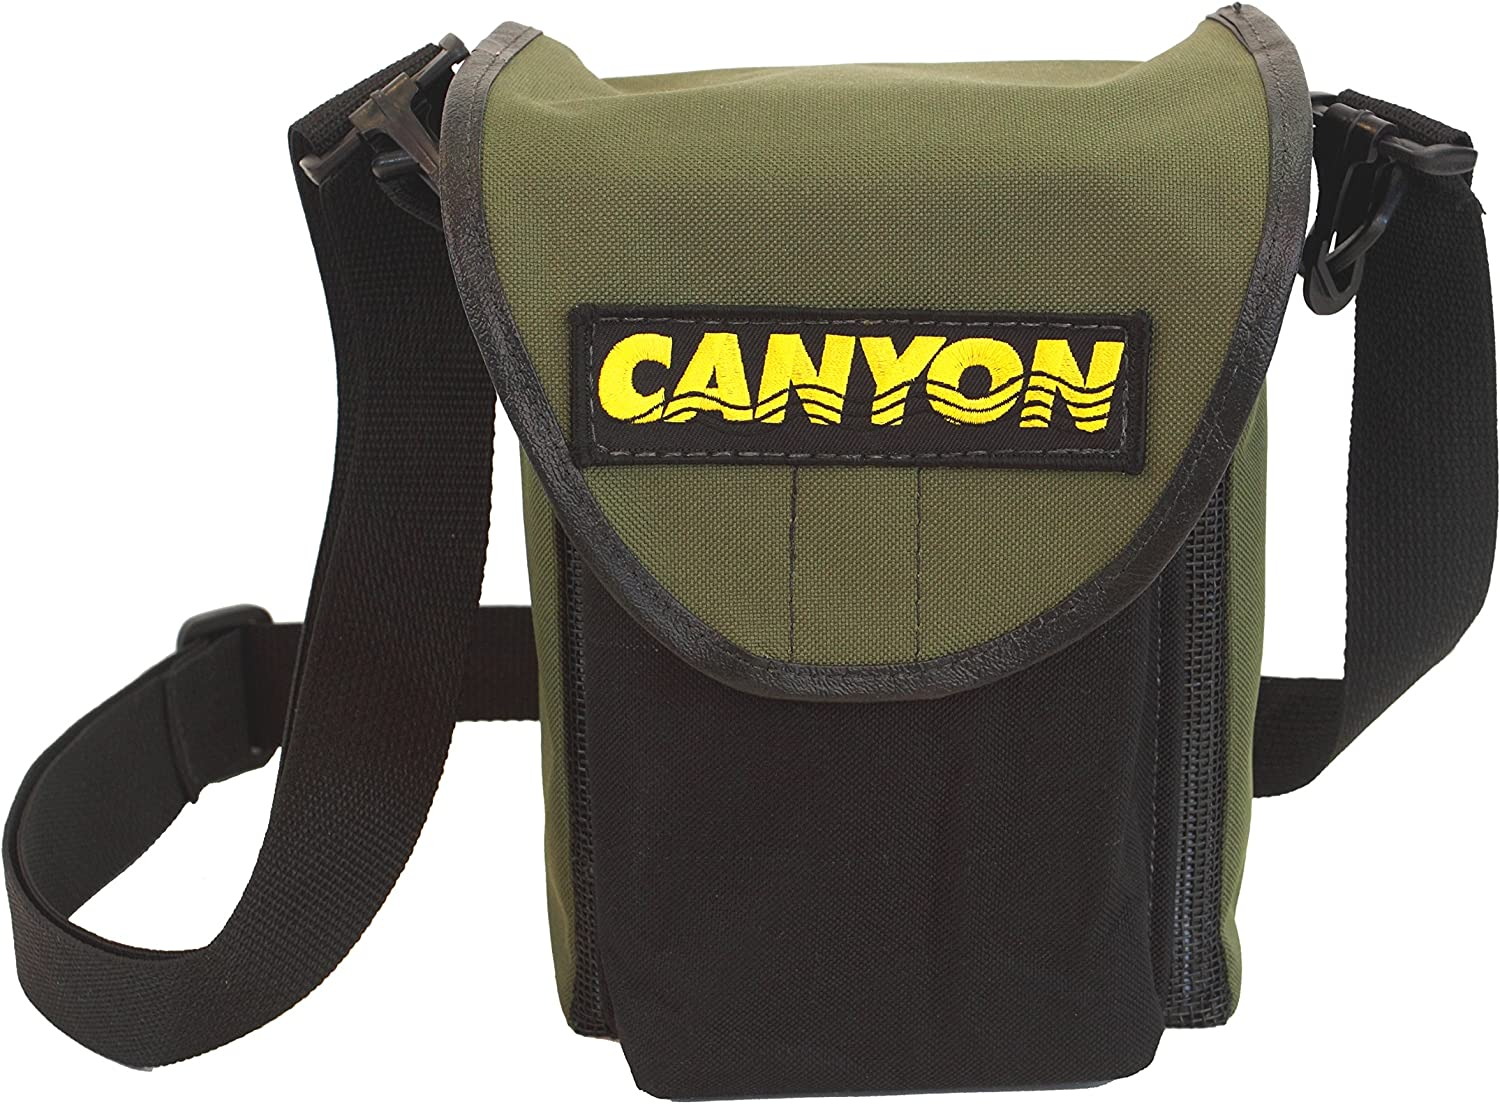 Canyon Surf Bags in 3 Sizes - The Original, Made in The USA 91RAkymzi4L